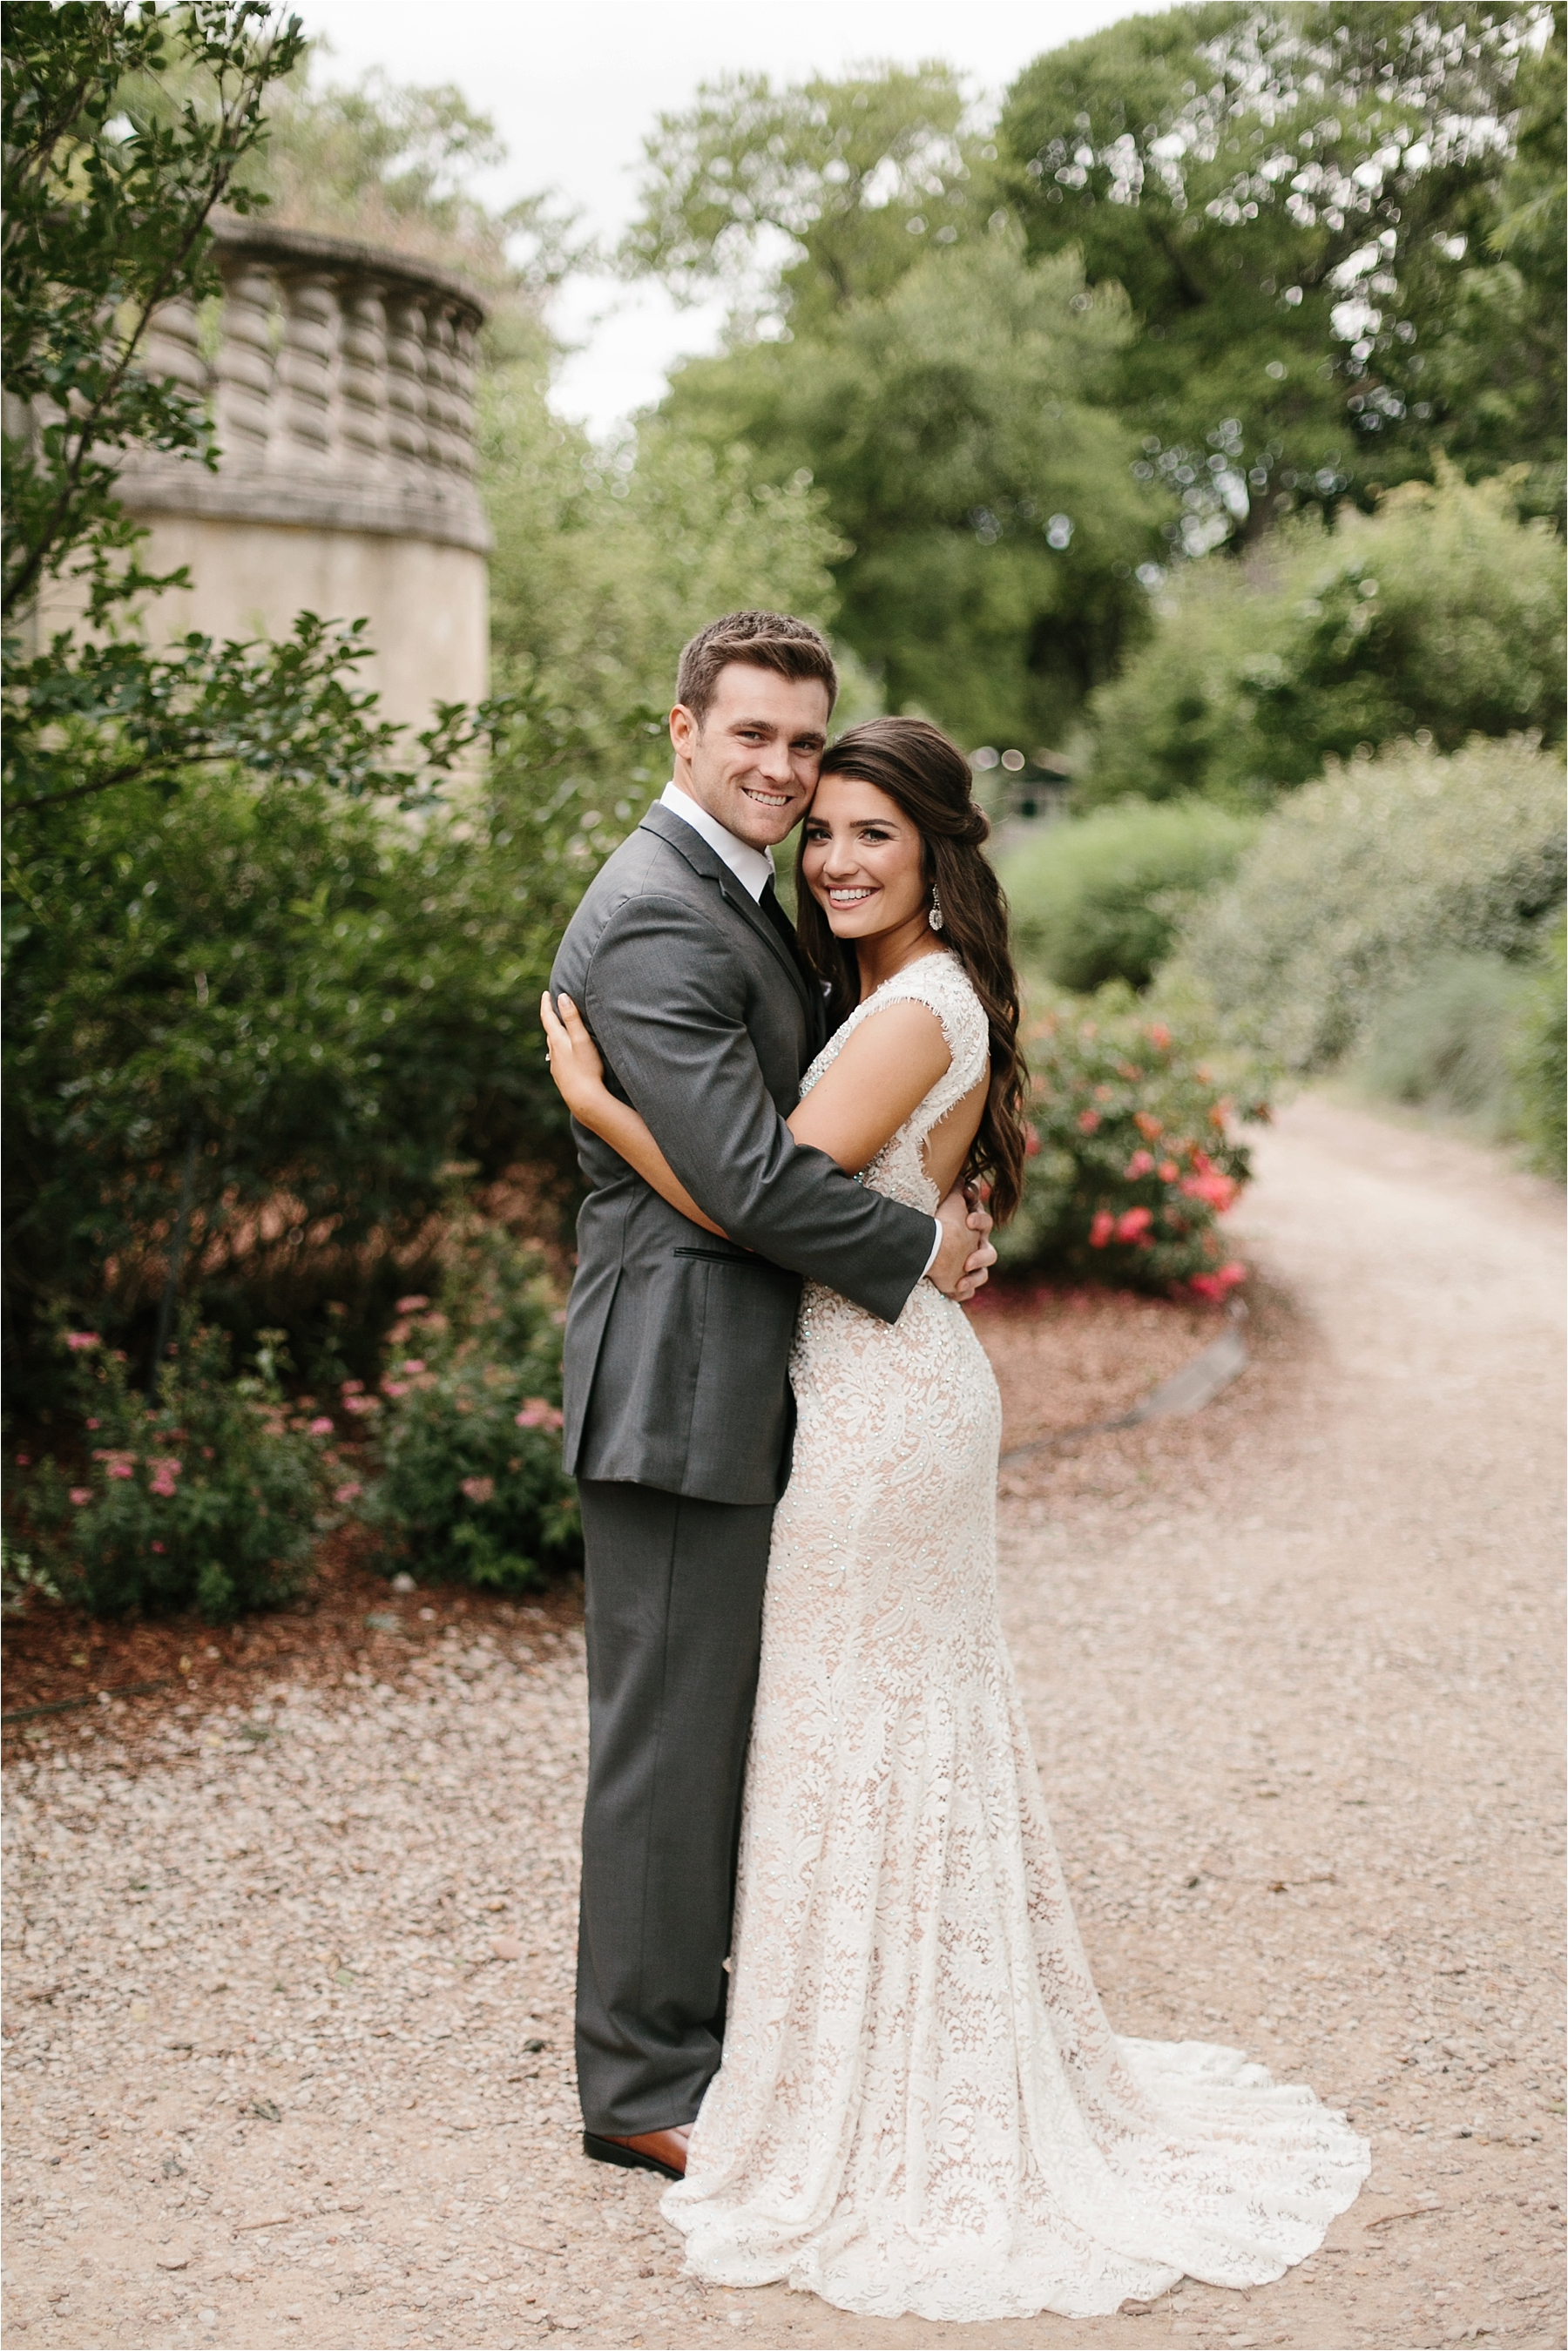 Devyn + Caden __ a Dallas Arboretum Garden Style Wedding by North Texas Wedding Photographer Rachel Meagan Photography __ 027